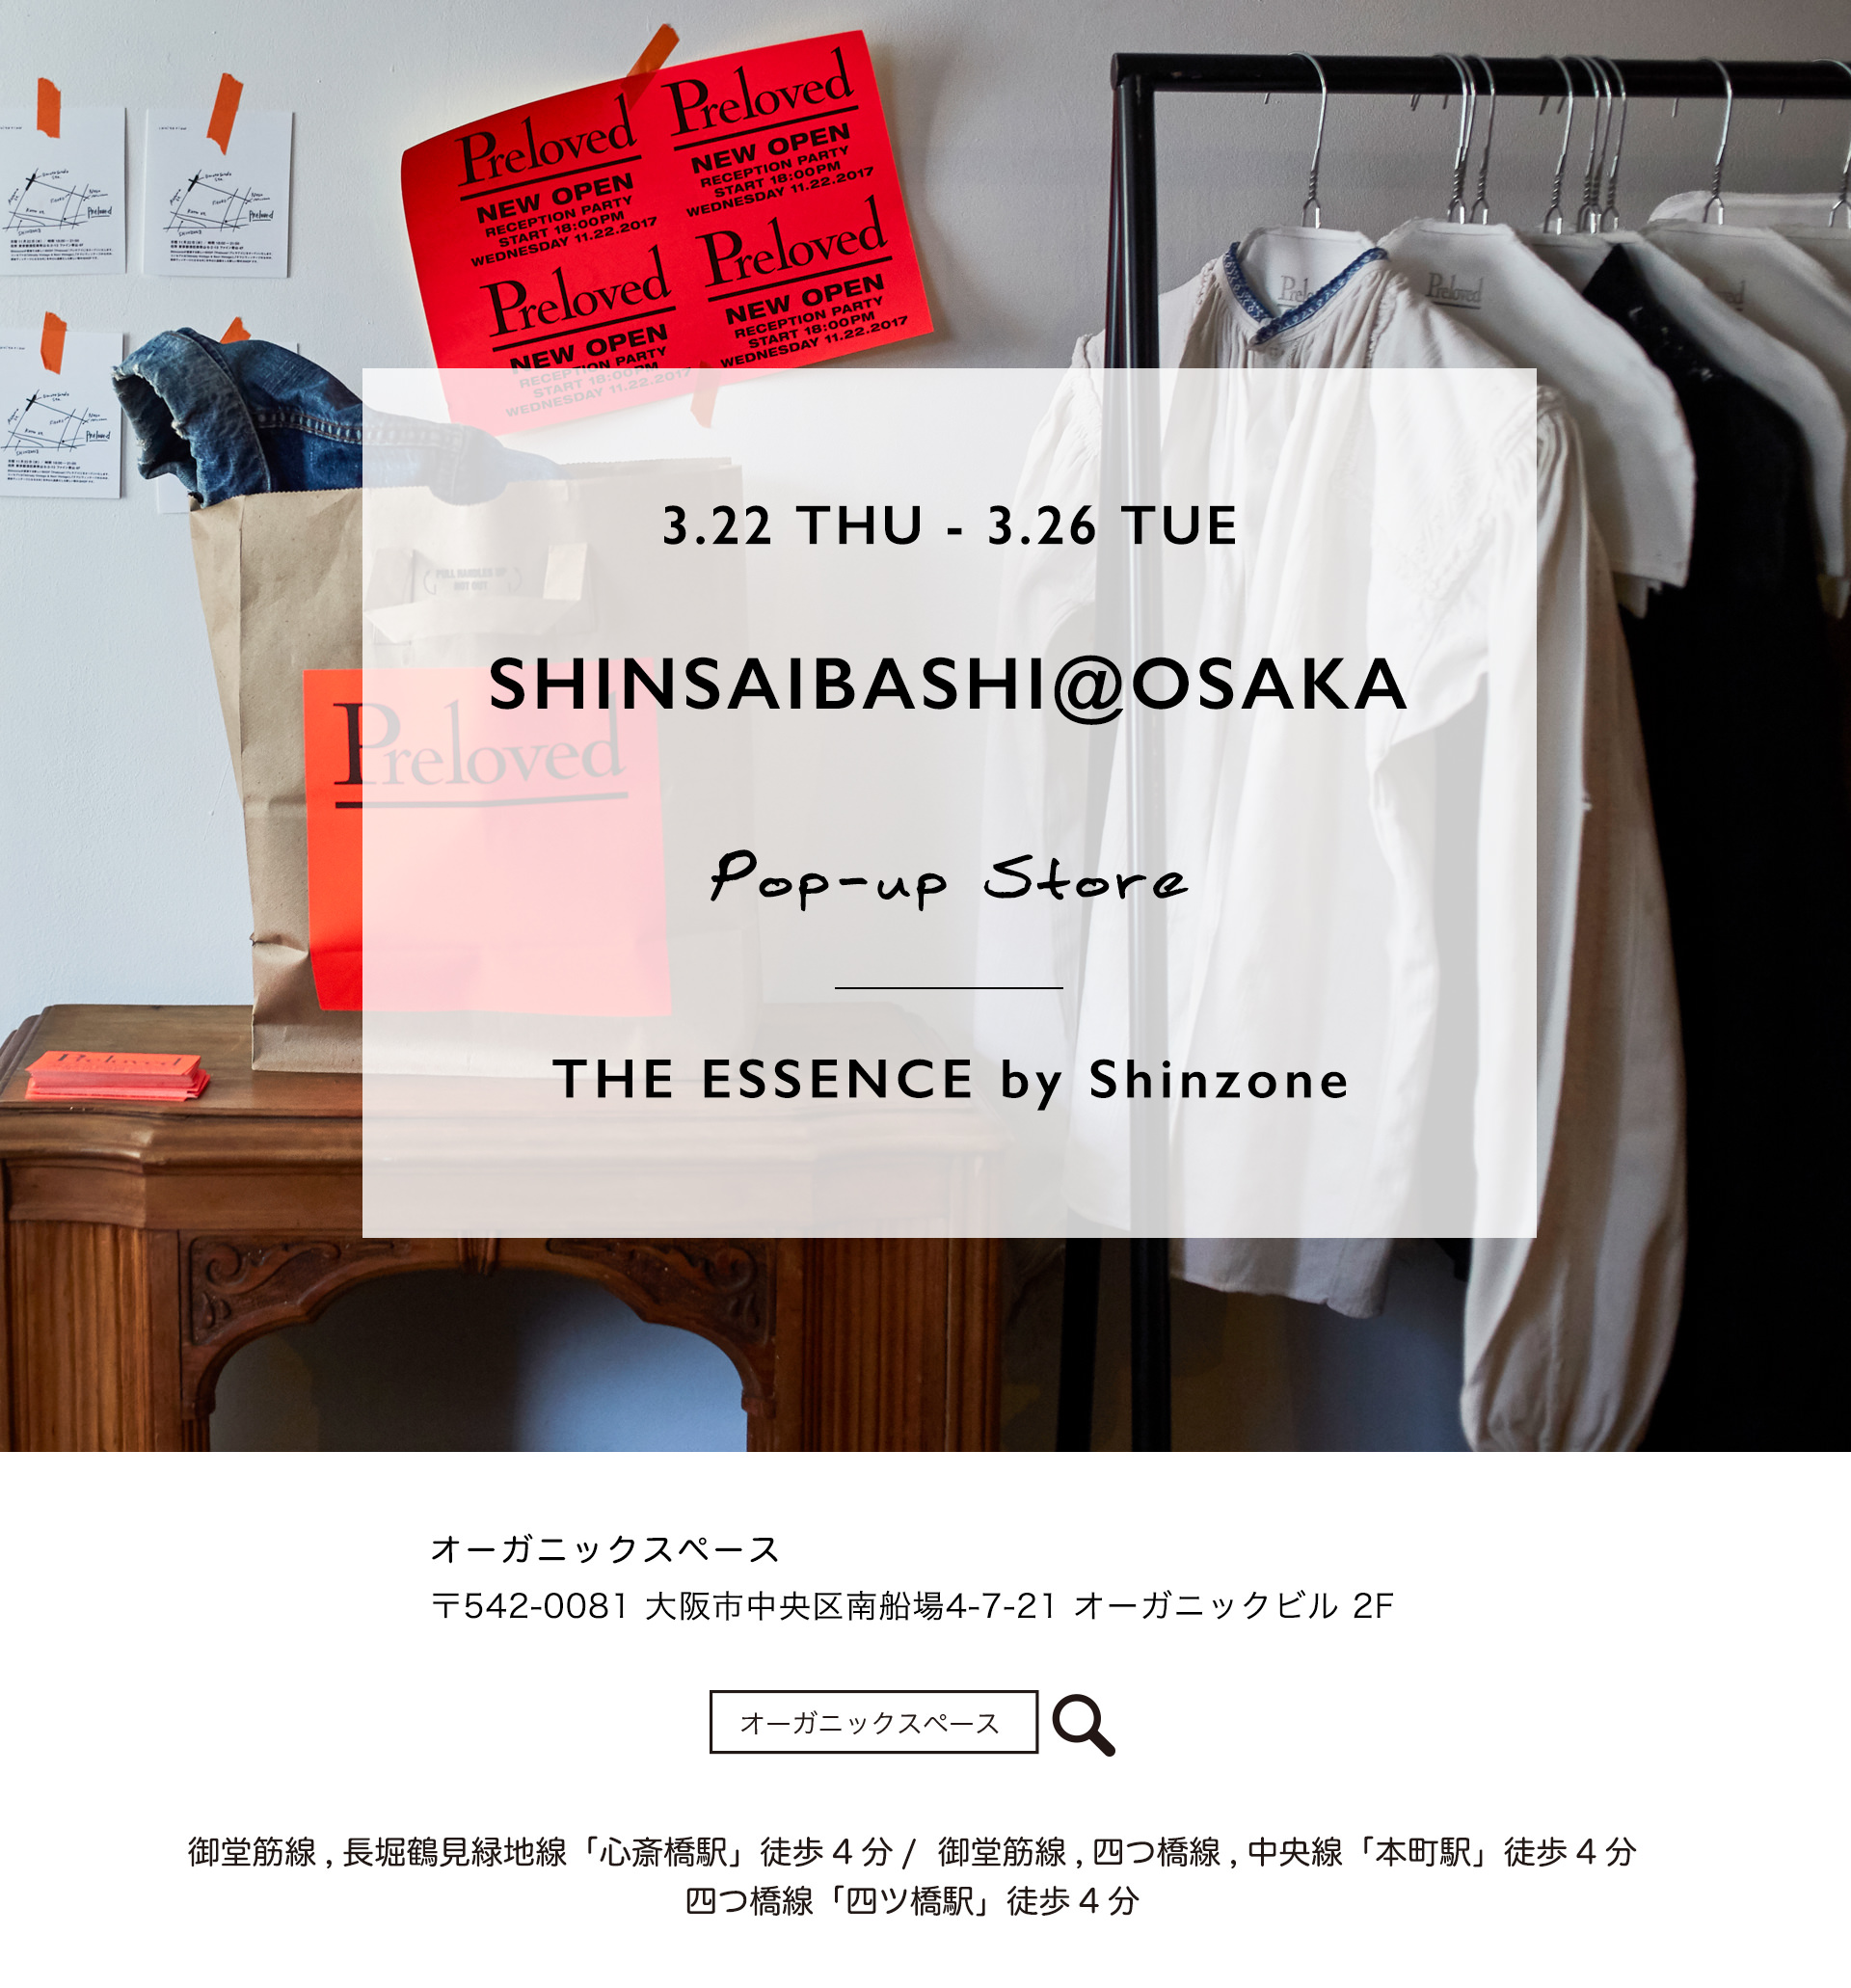 NEWS_OSAKA_THE-ESSENCE_20180316